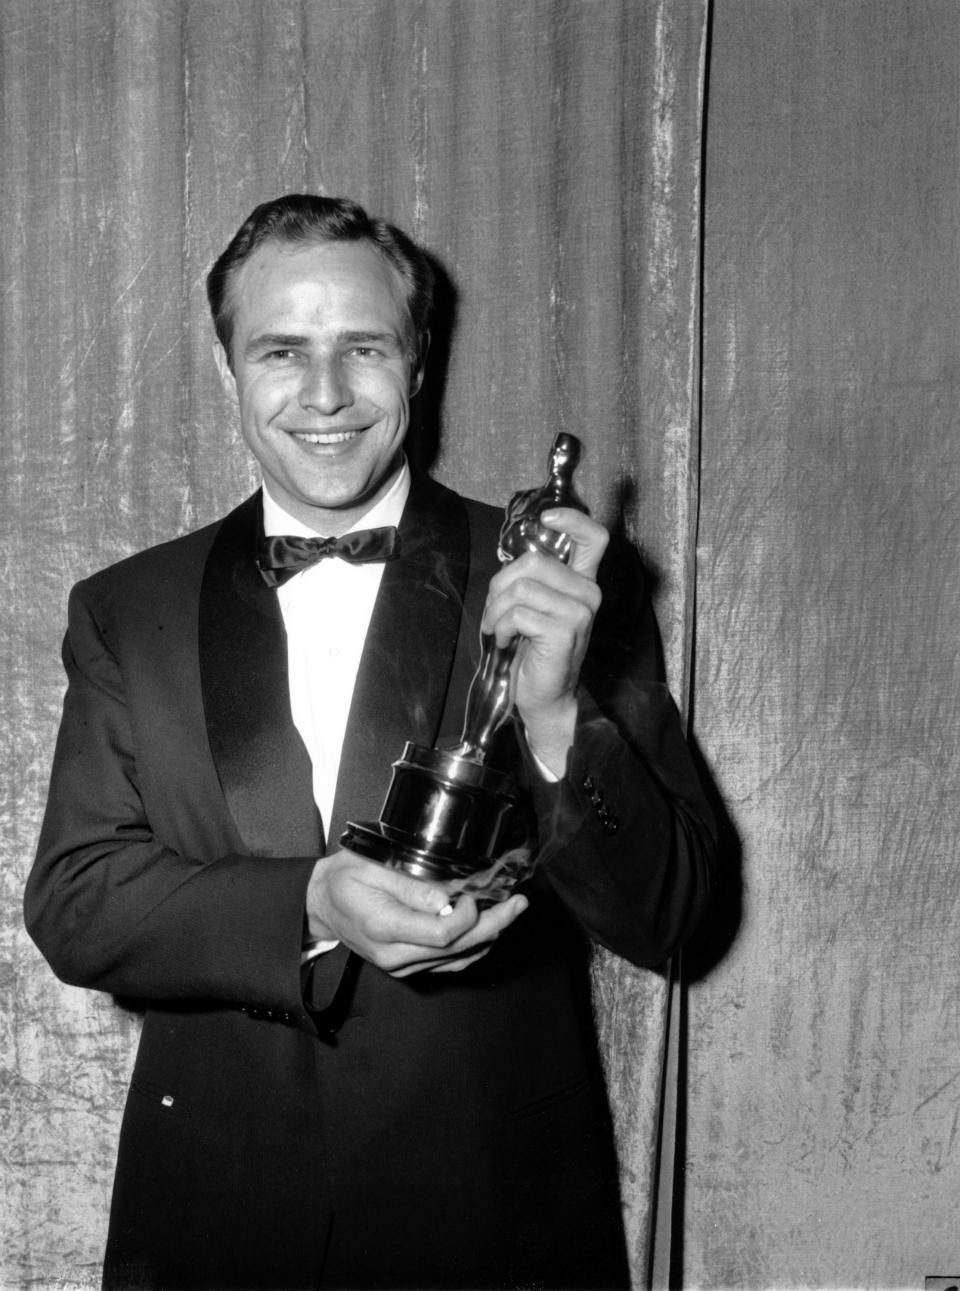 Oscar-winner Marlon Brando poses with his statuette at the 27th Annual Academy Awards at Pantages Theater in Hollywood, Ca. on March 30, 1955.  Brando won best actor of the year for his portrayal in